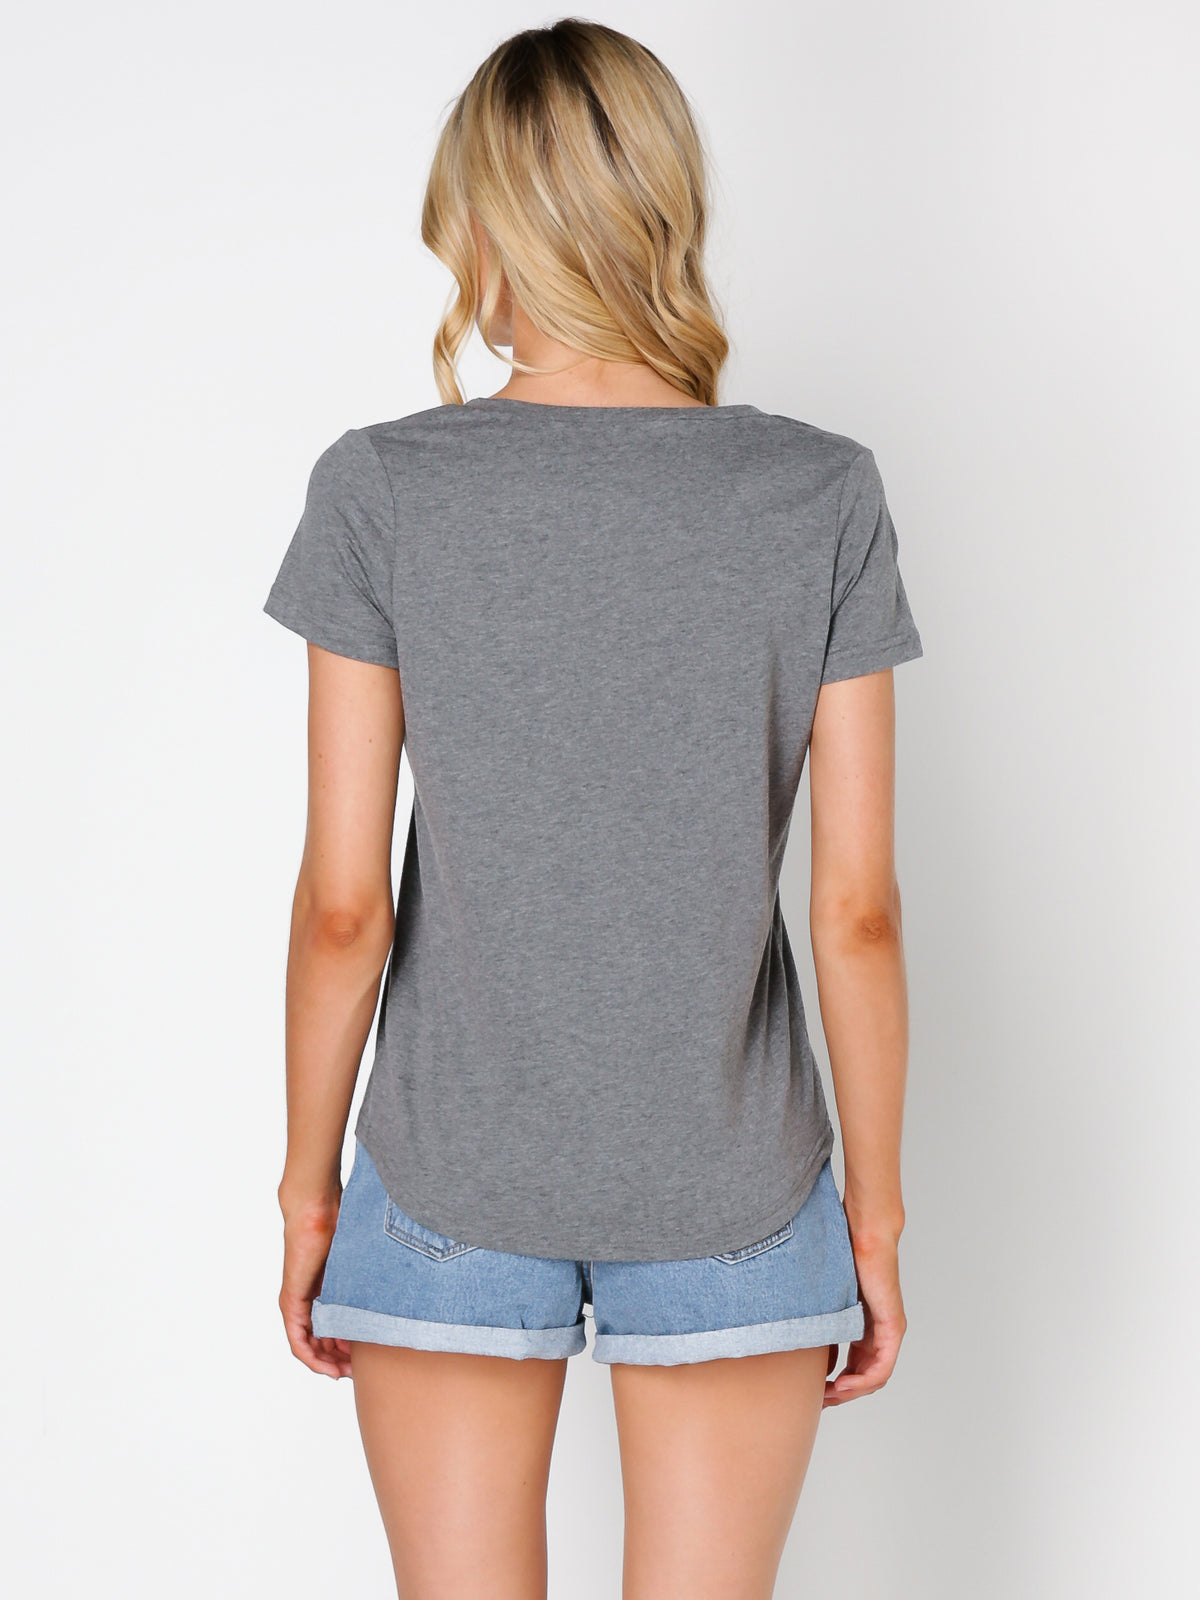 Evie V Neck Tee in Grey